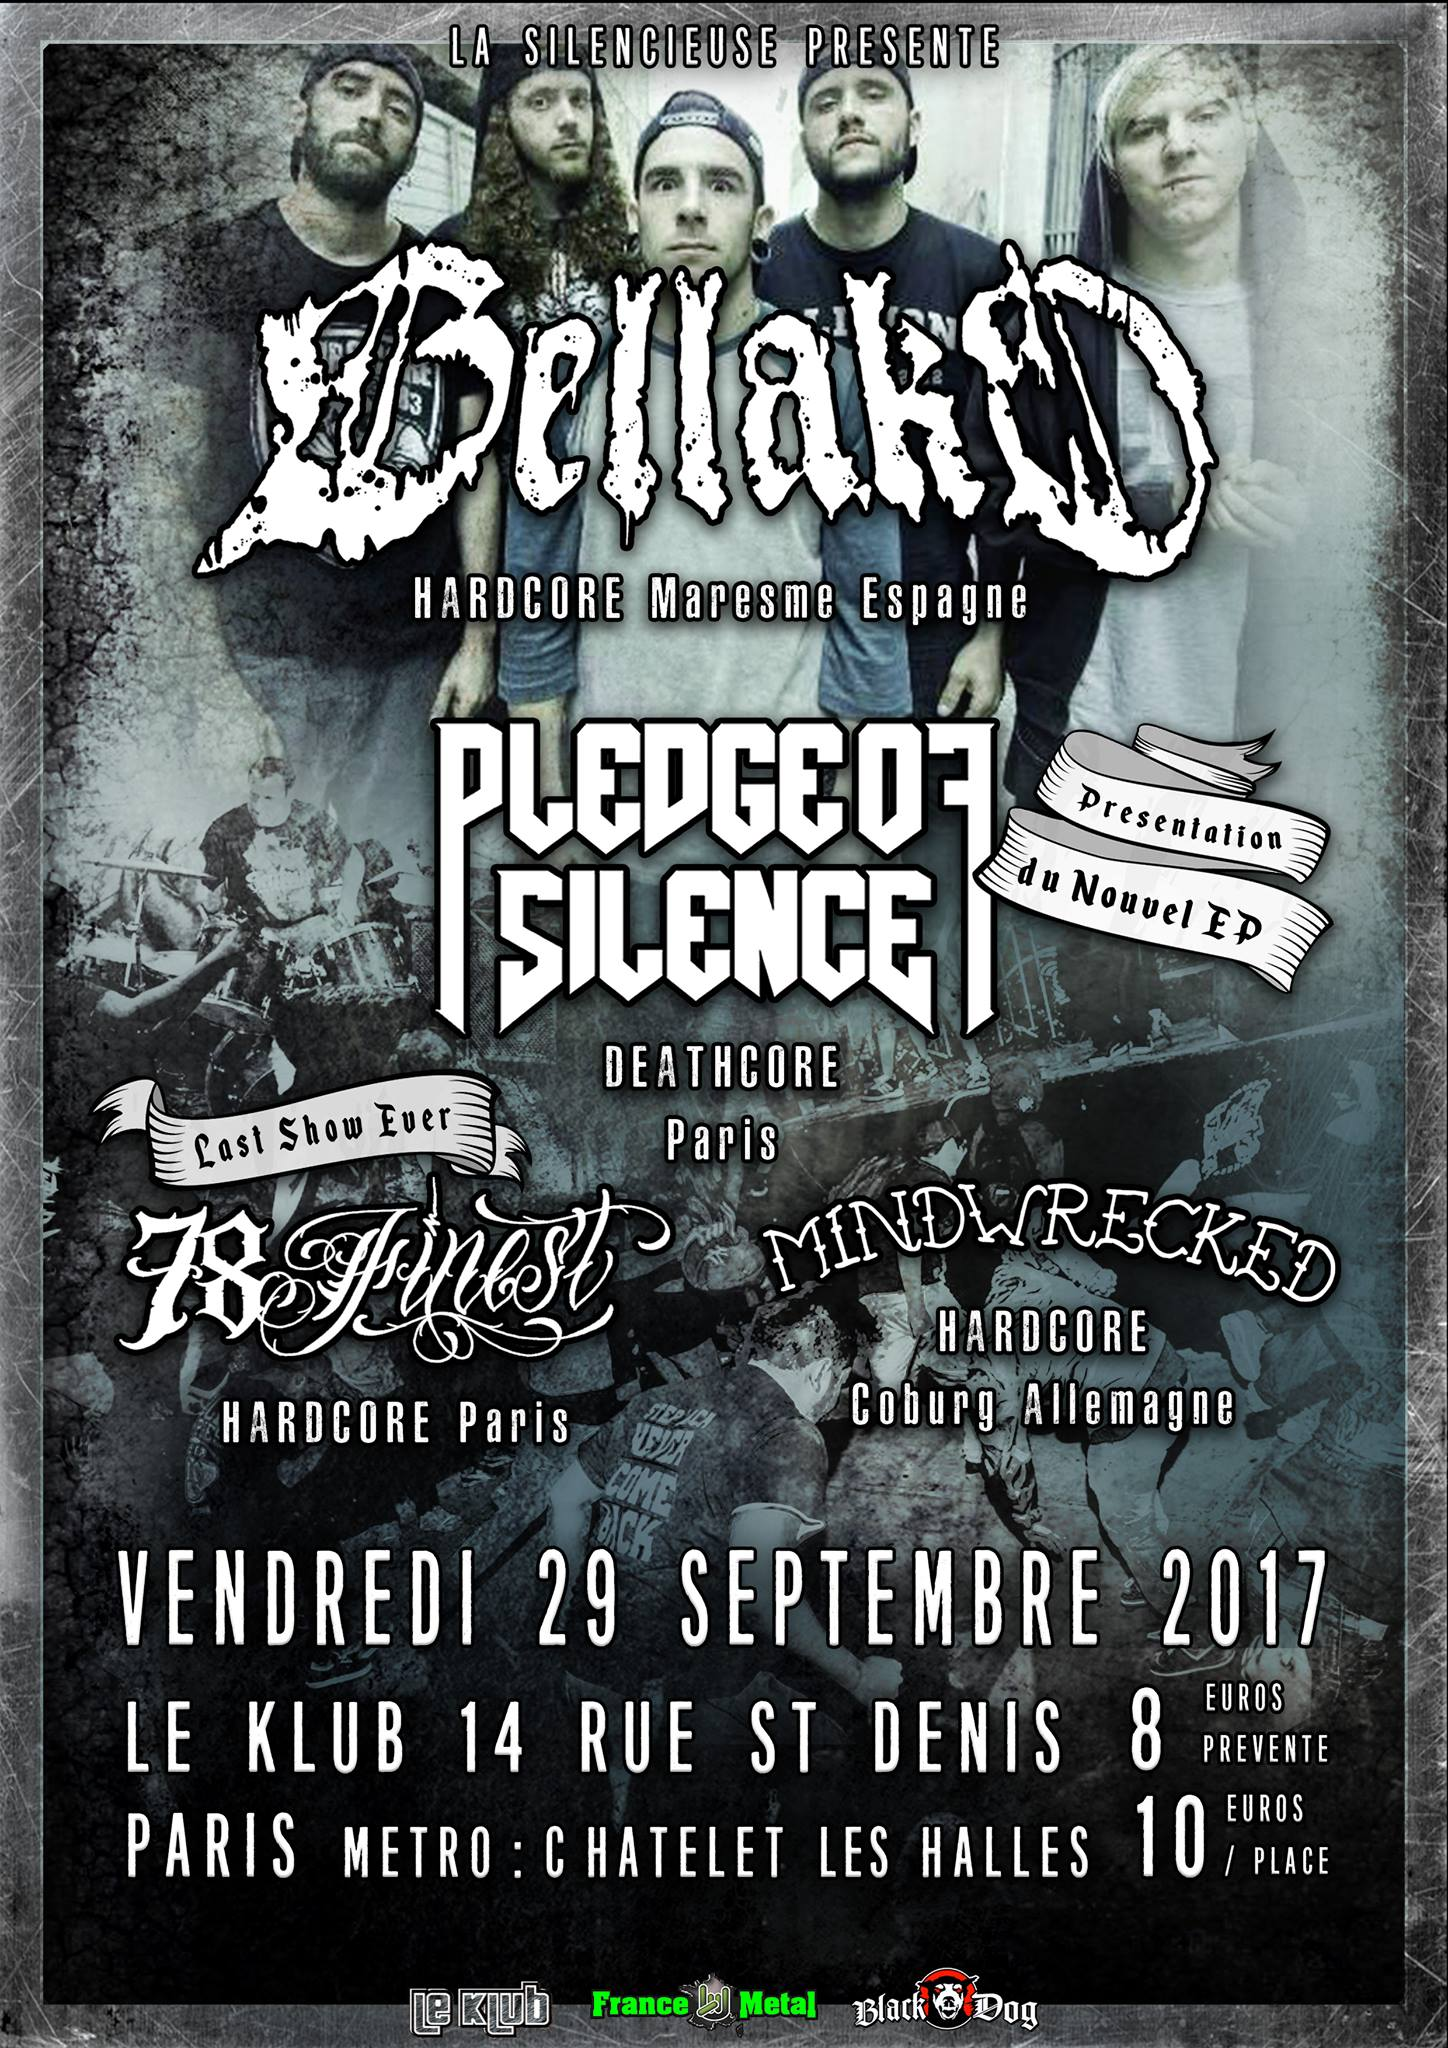 Bellako, Pledge of Silence, 78 Finest & Mindwrecked ■ 29.09